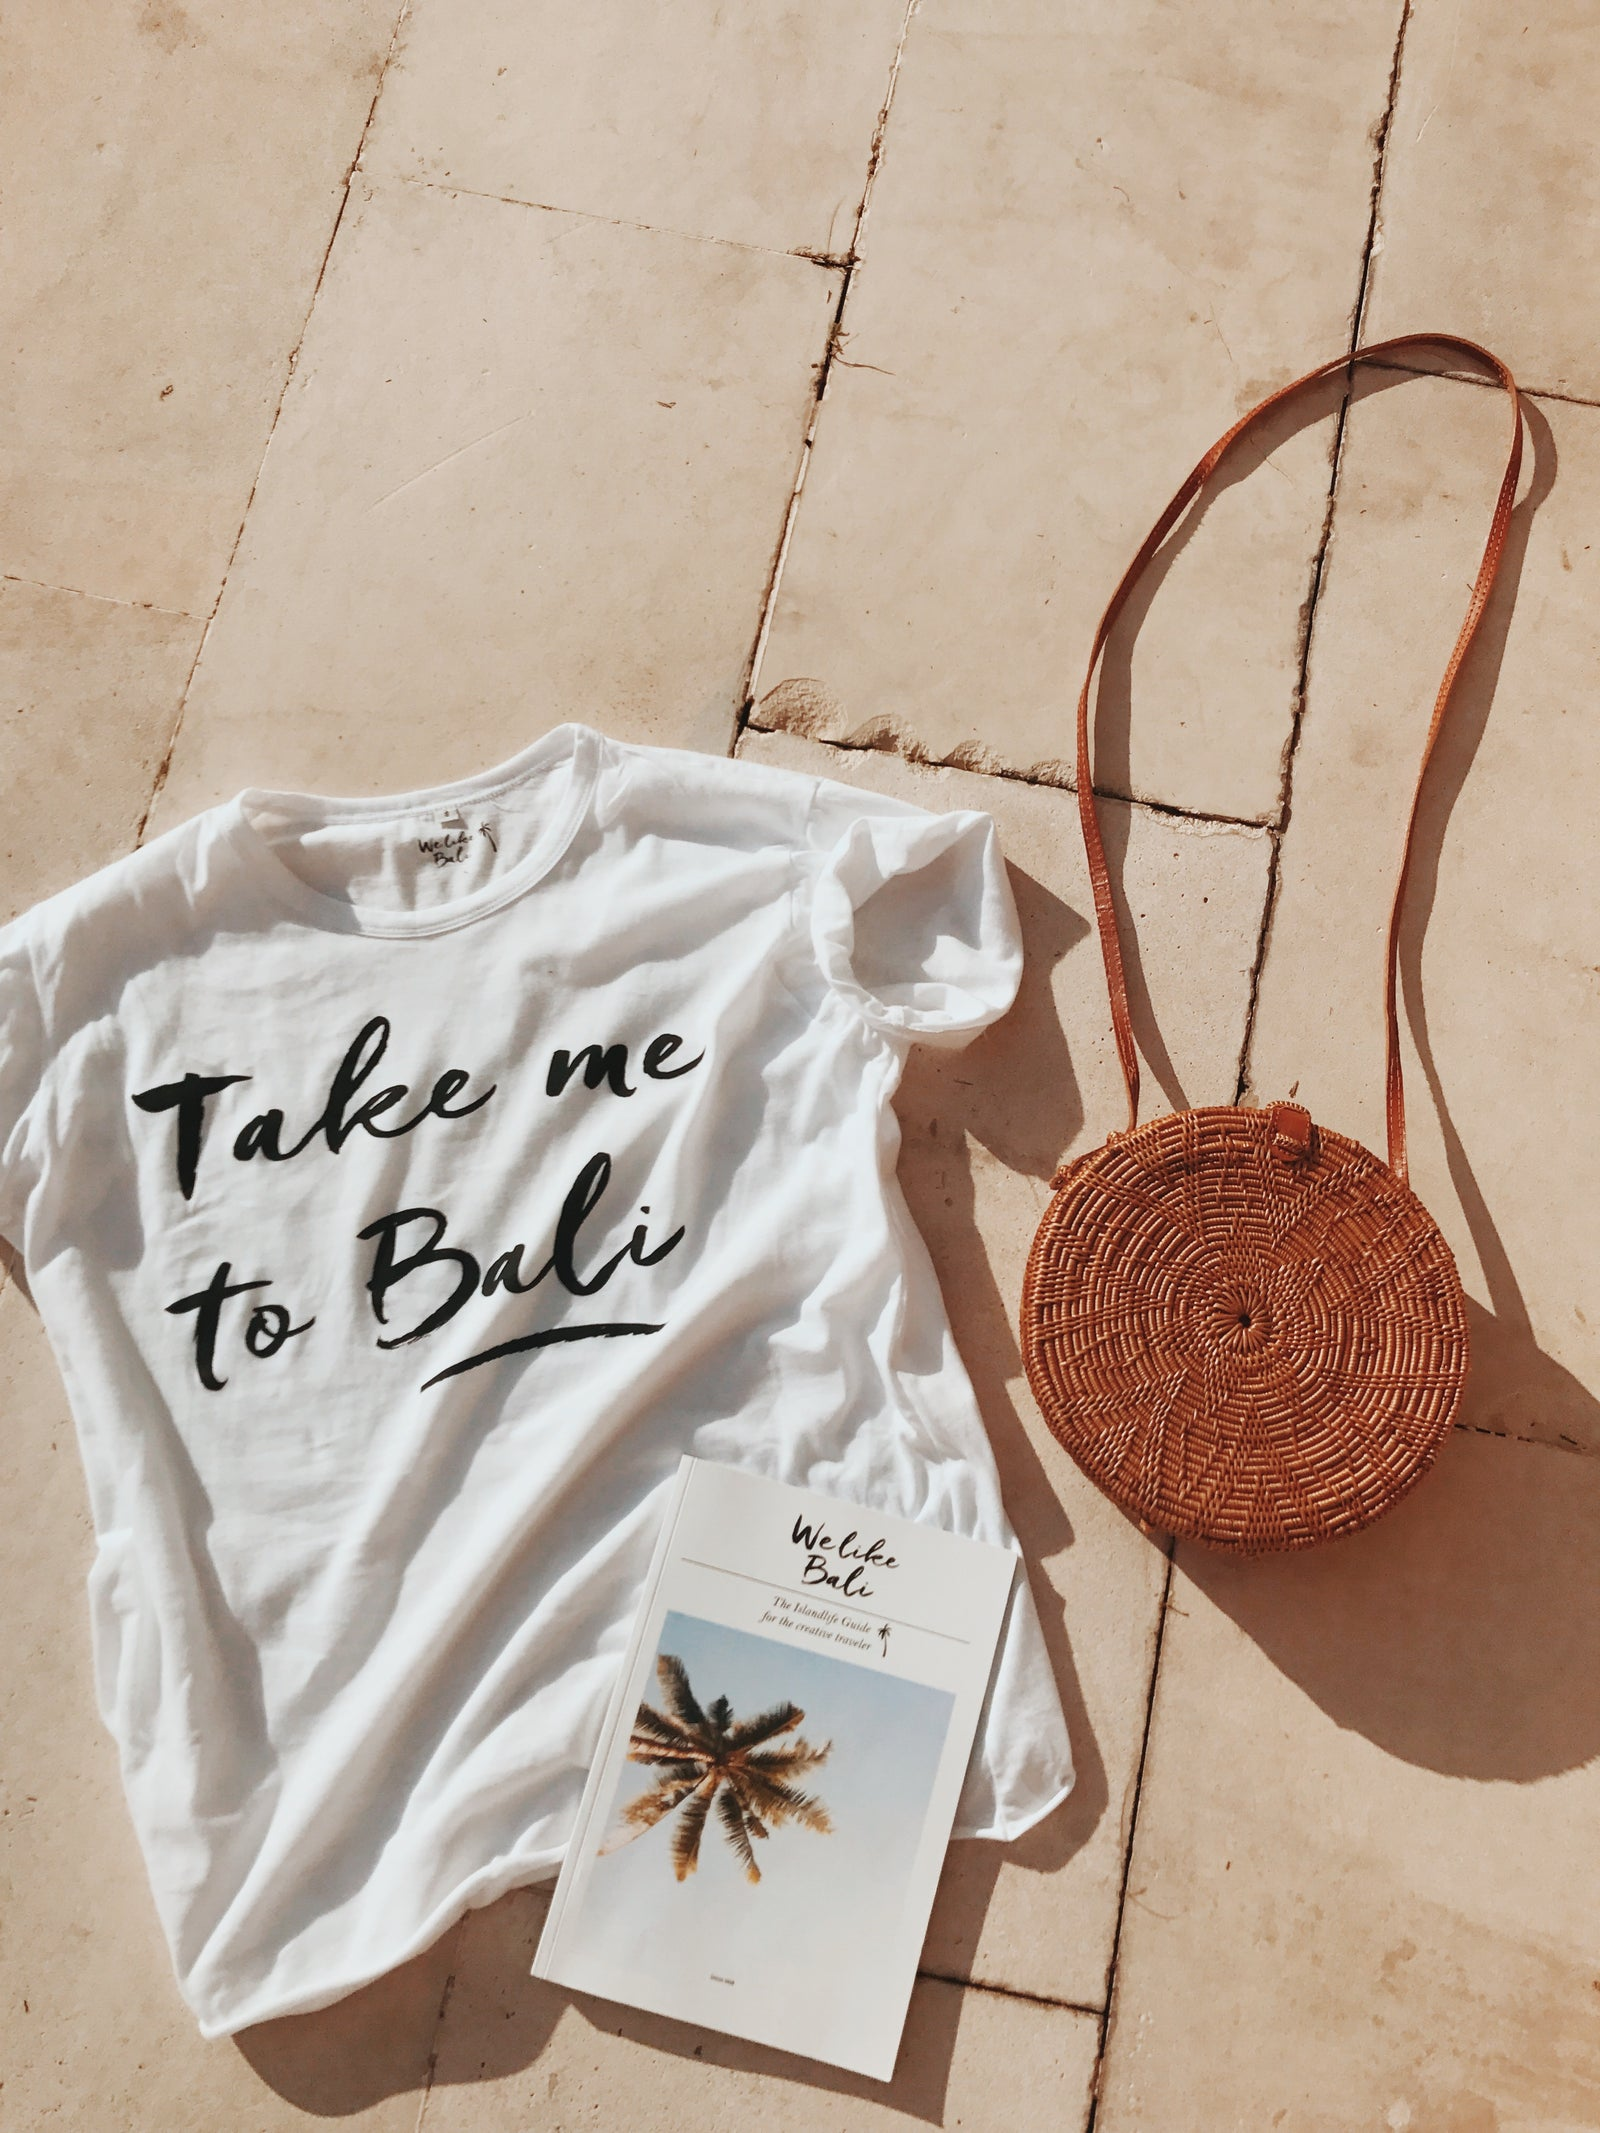 Take me to Bali T-shirt - White